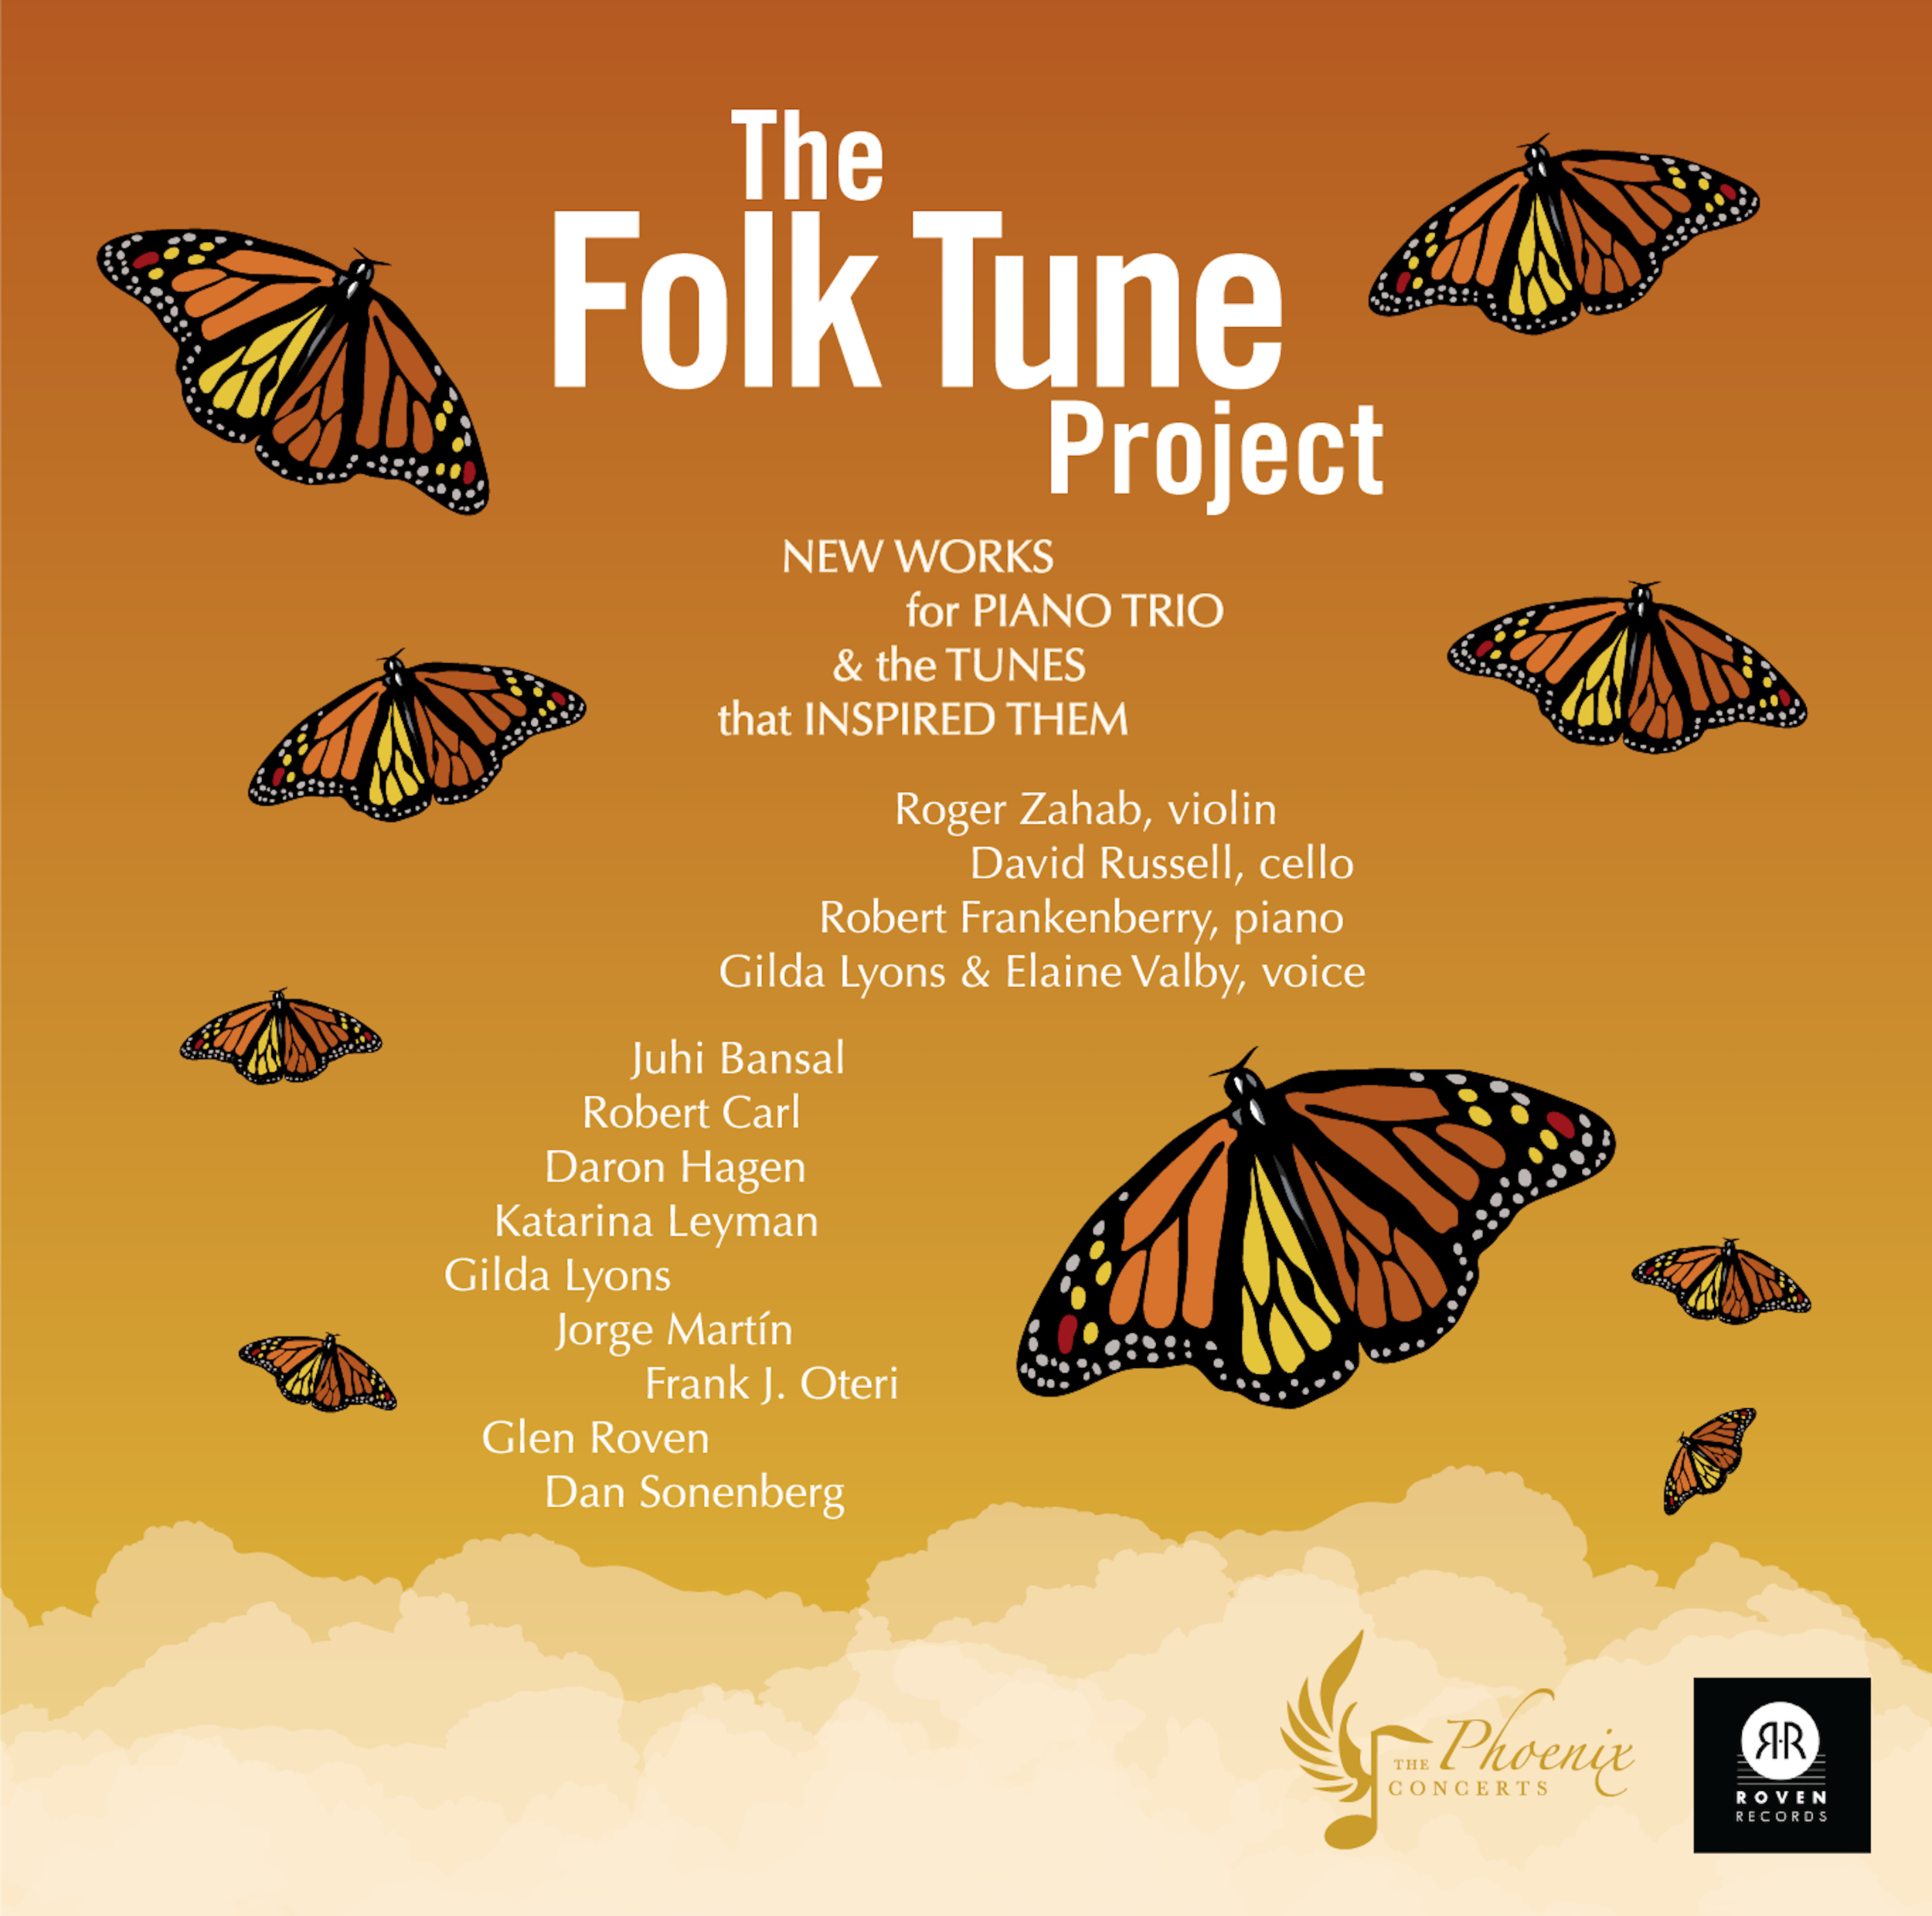 The Phoenix Concerts' release   The Folk Tune Project   is available on Amazon. Click the image above to order.